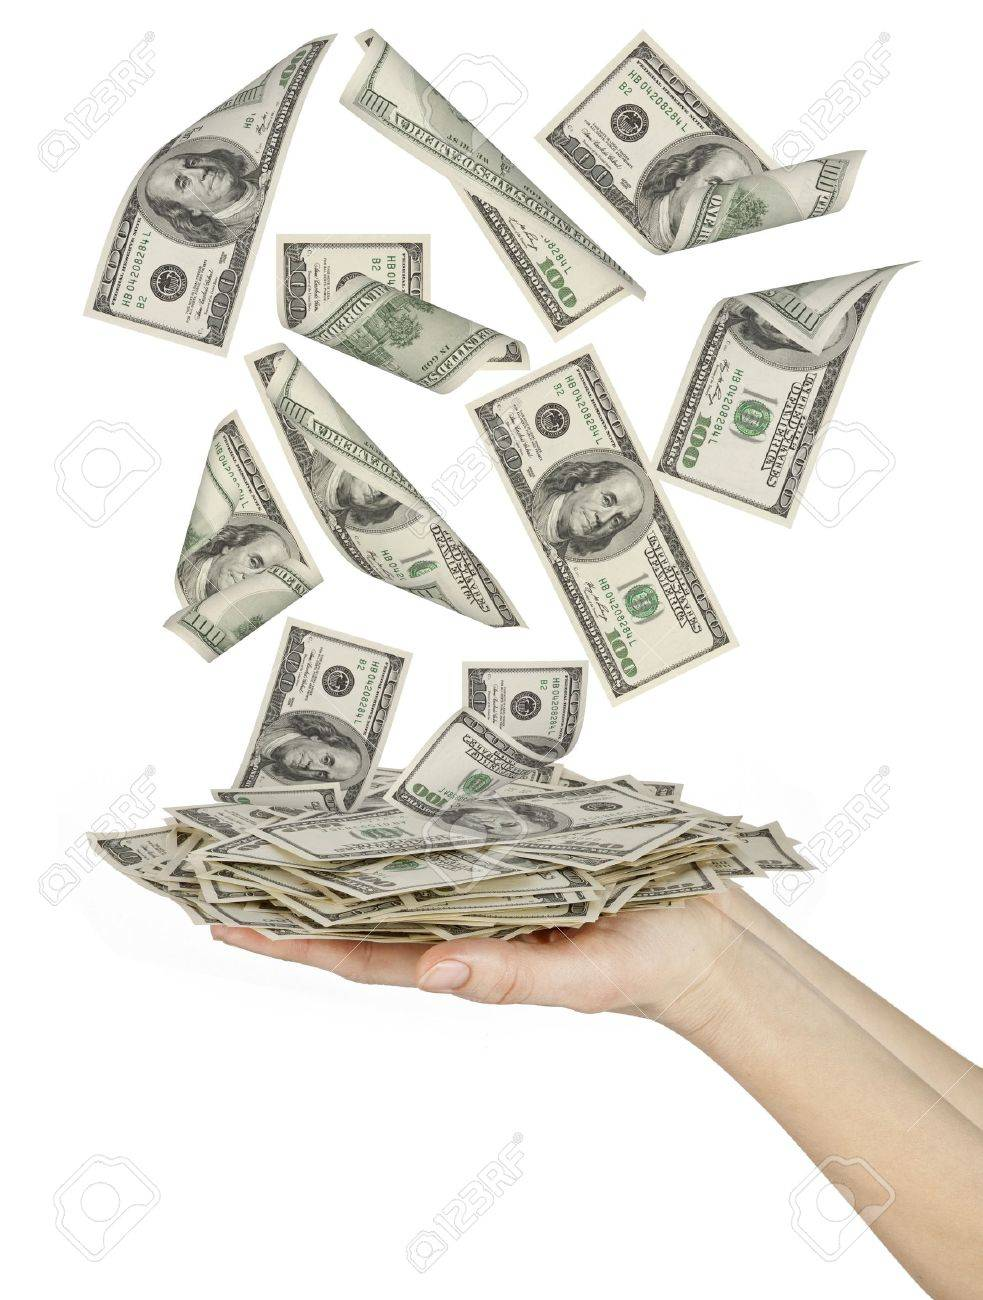 Many dollars falling on womans hand with money Stock Photo - 9458445